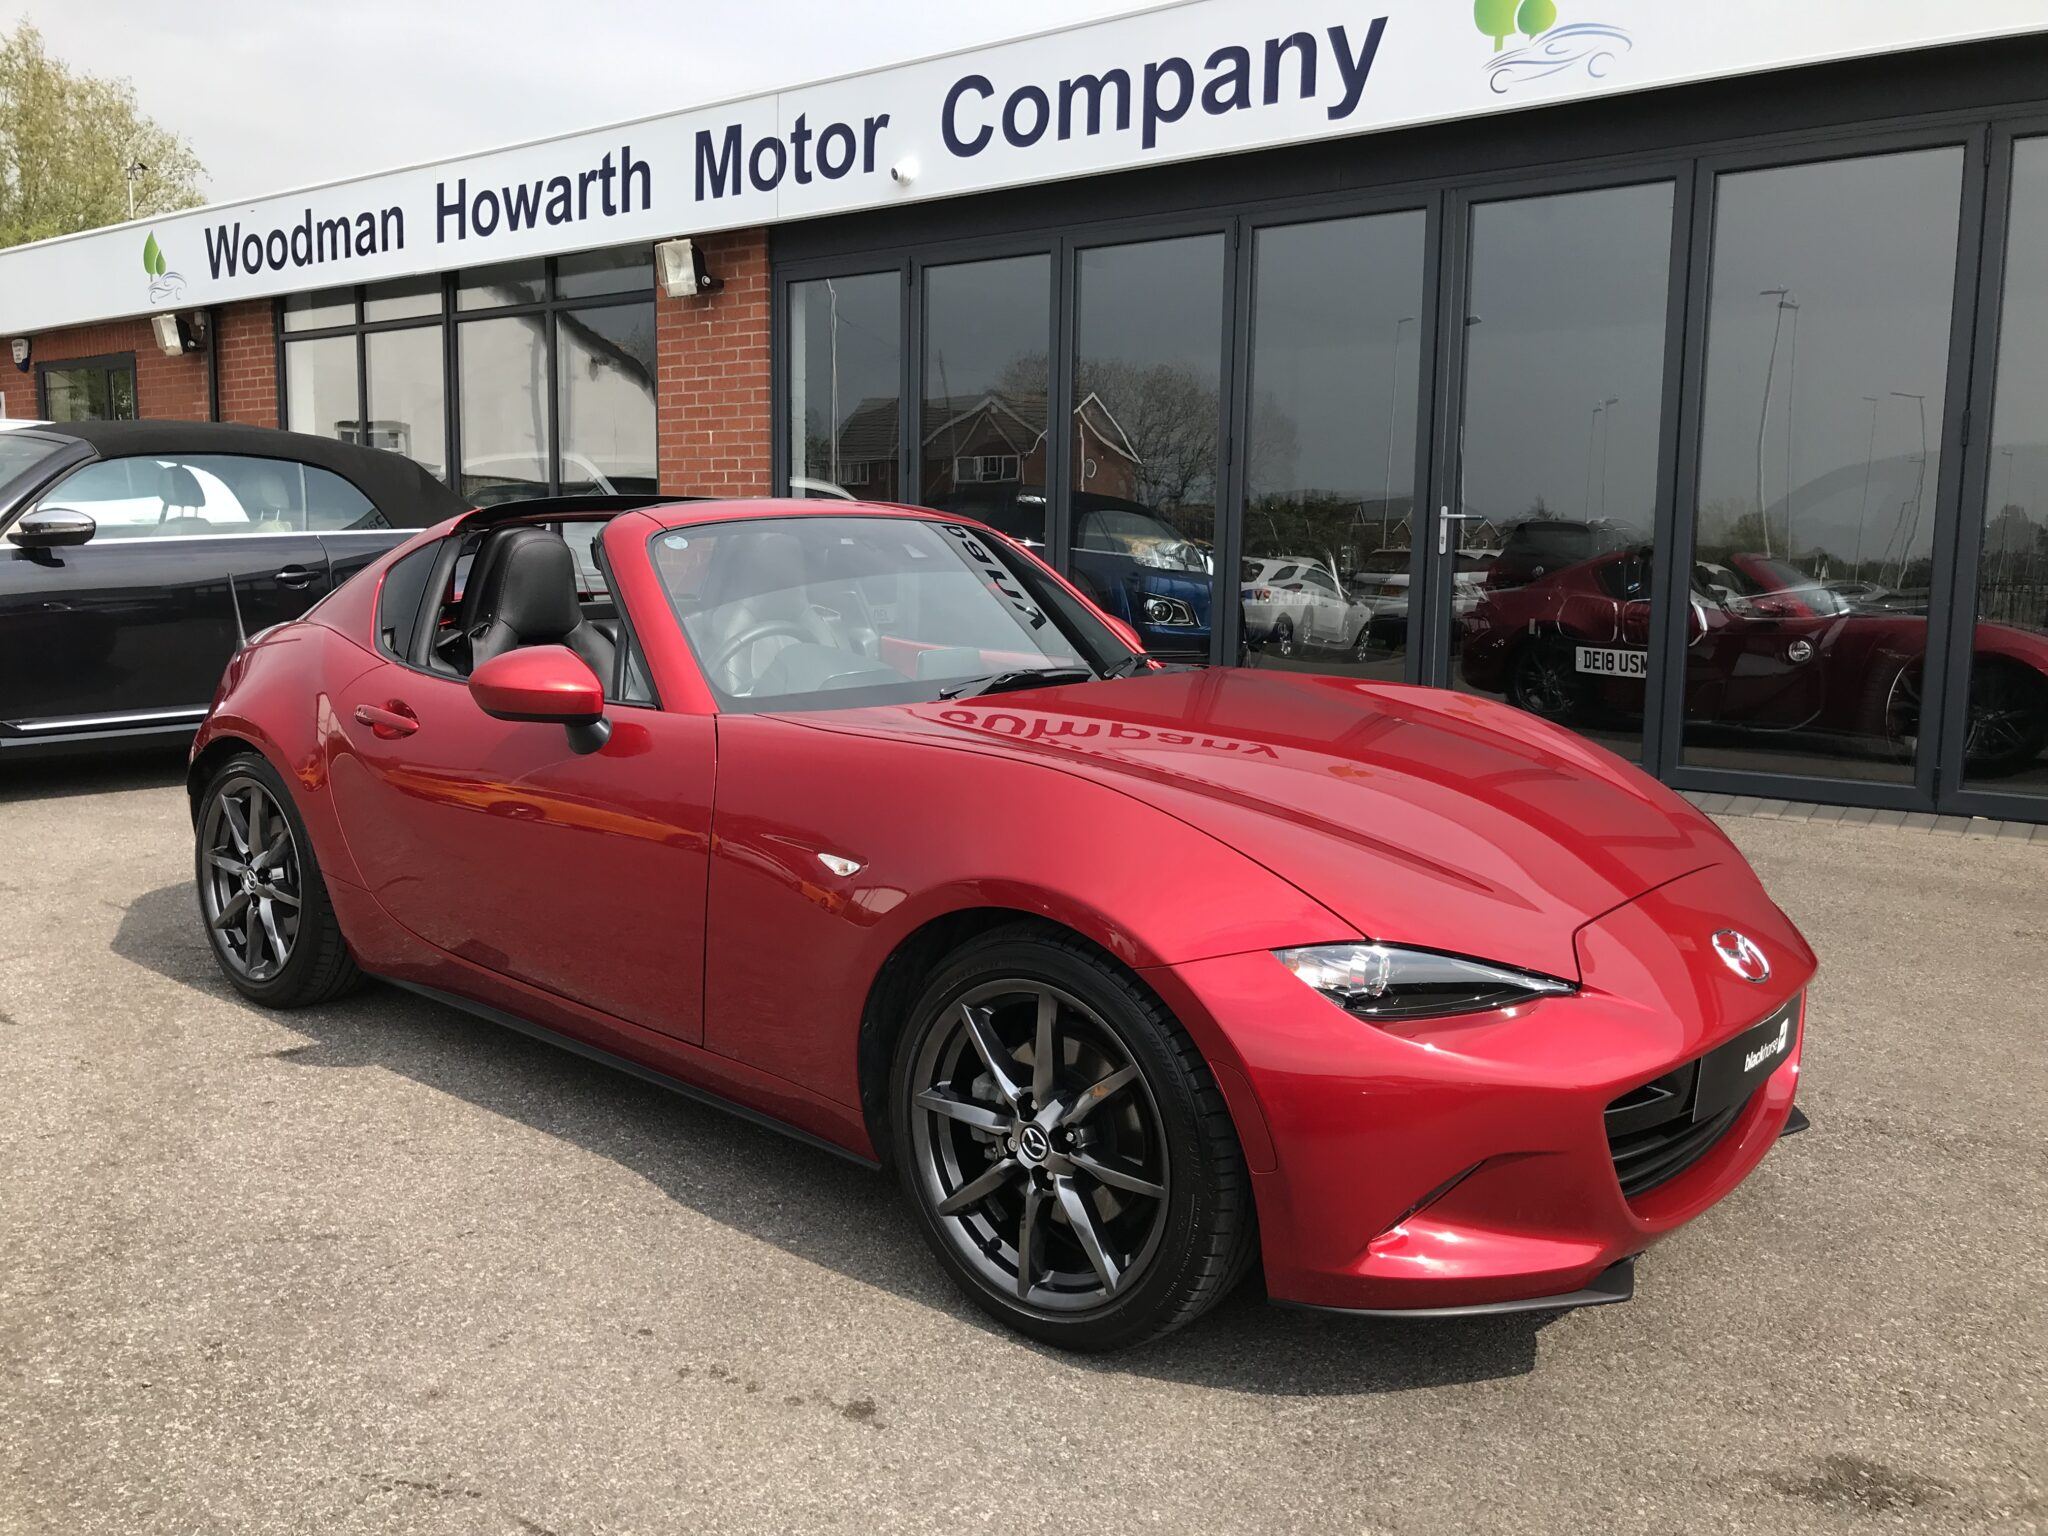 2018 67 MAZDA MX5 RF 2.0 ROADSTER AUTOMATIC Only 9500 Mls Huge Spec Excellent Value & Condition